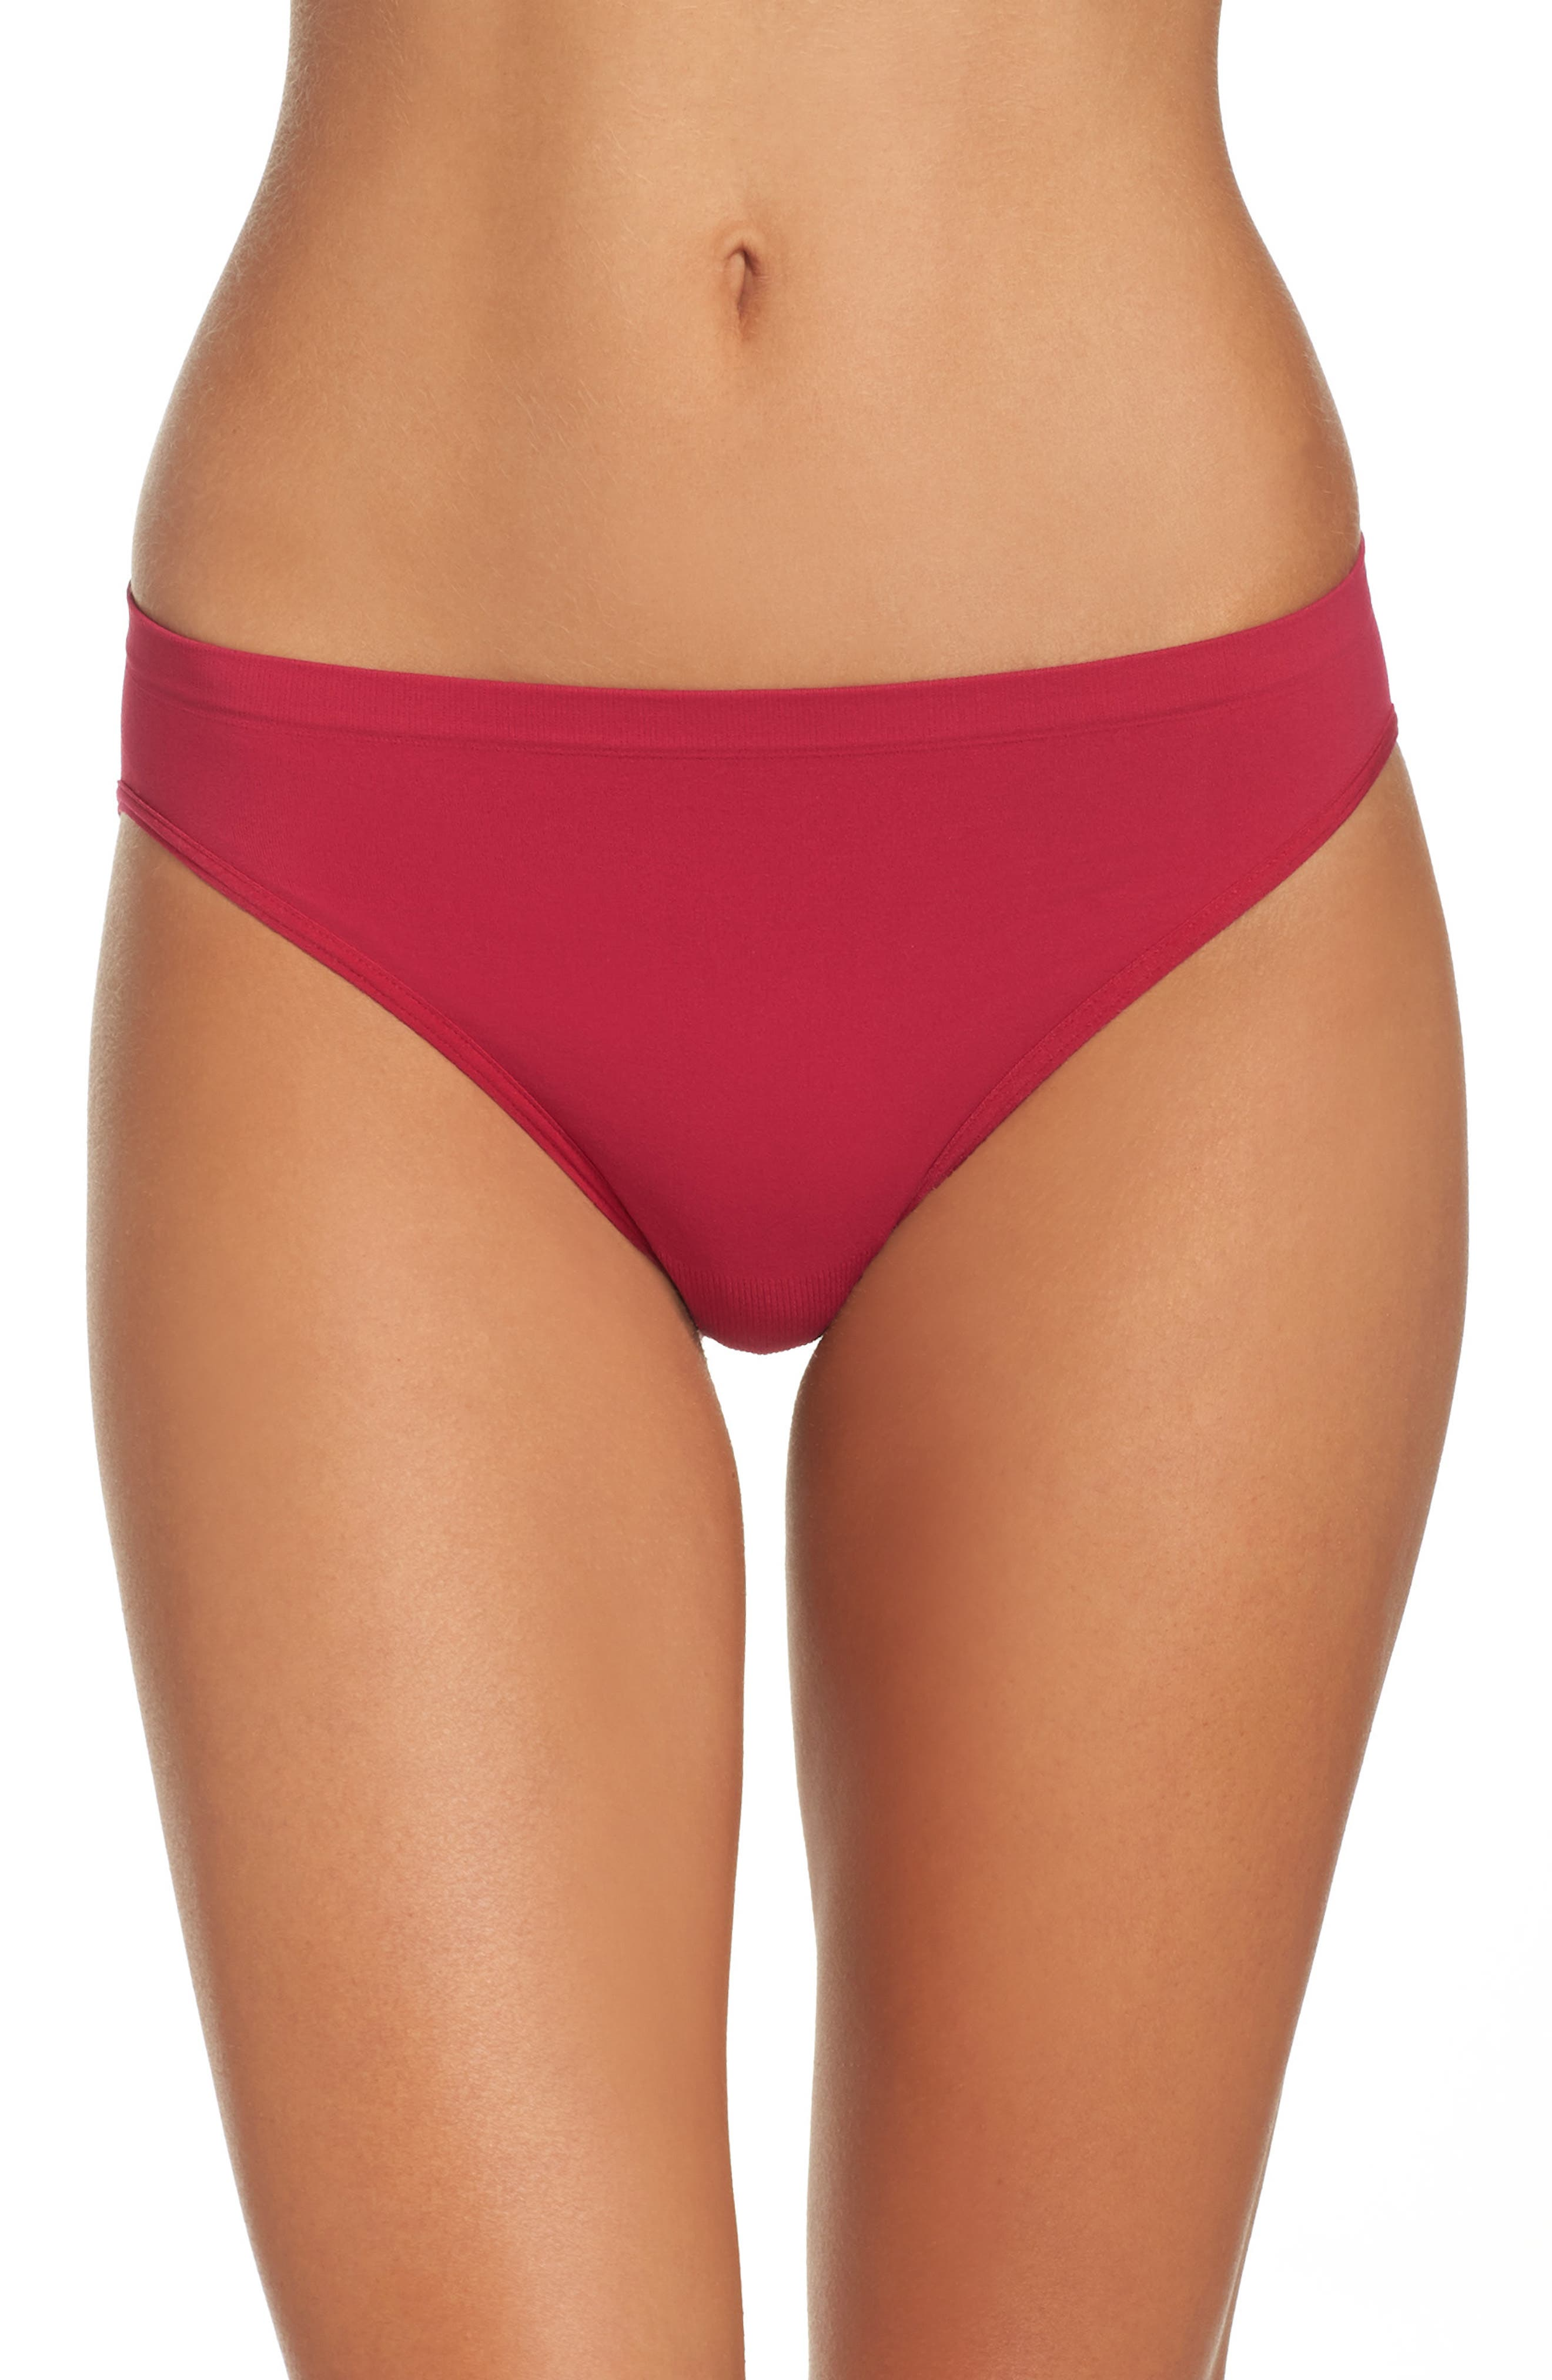 Nordstrom Lingerie Seamless High Cut Briefs (3 for $33)